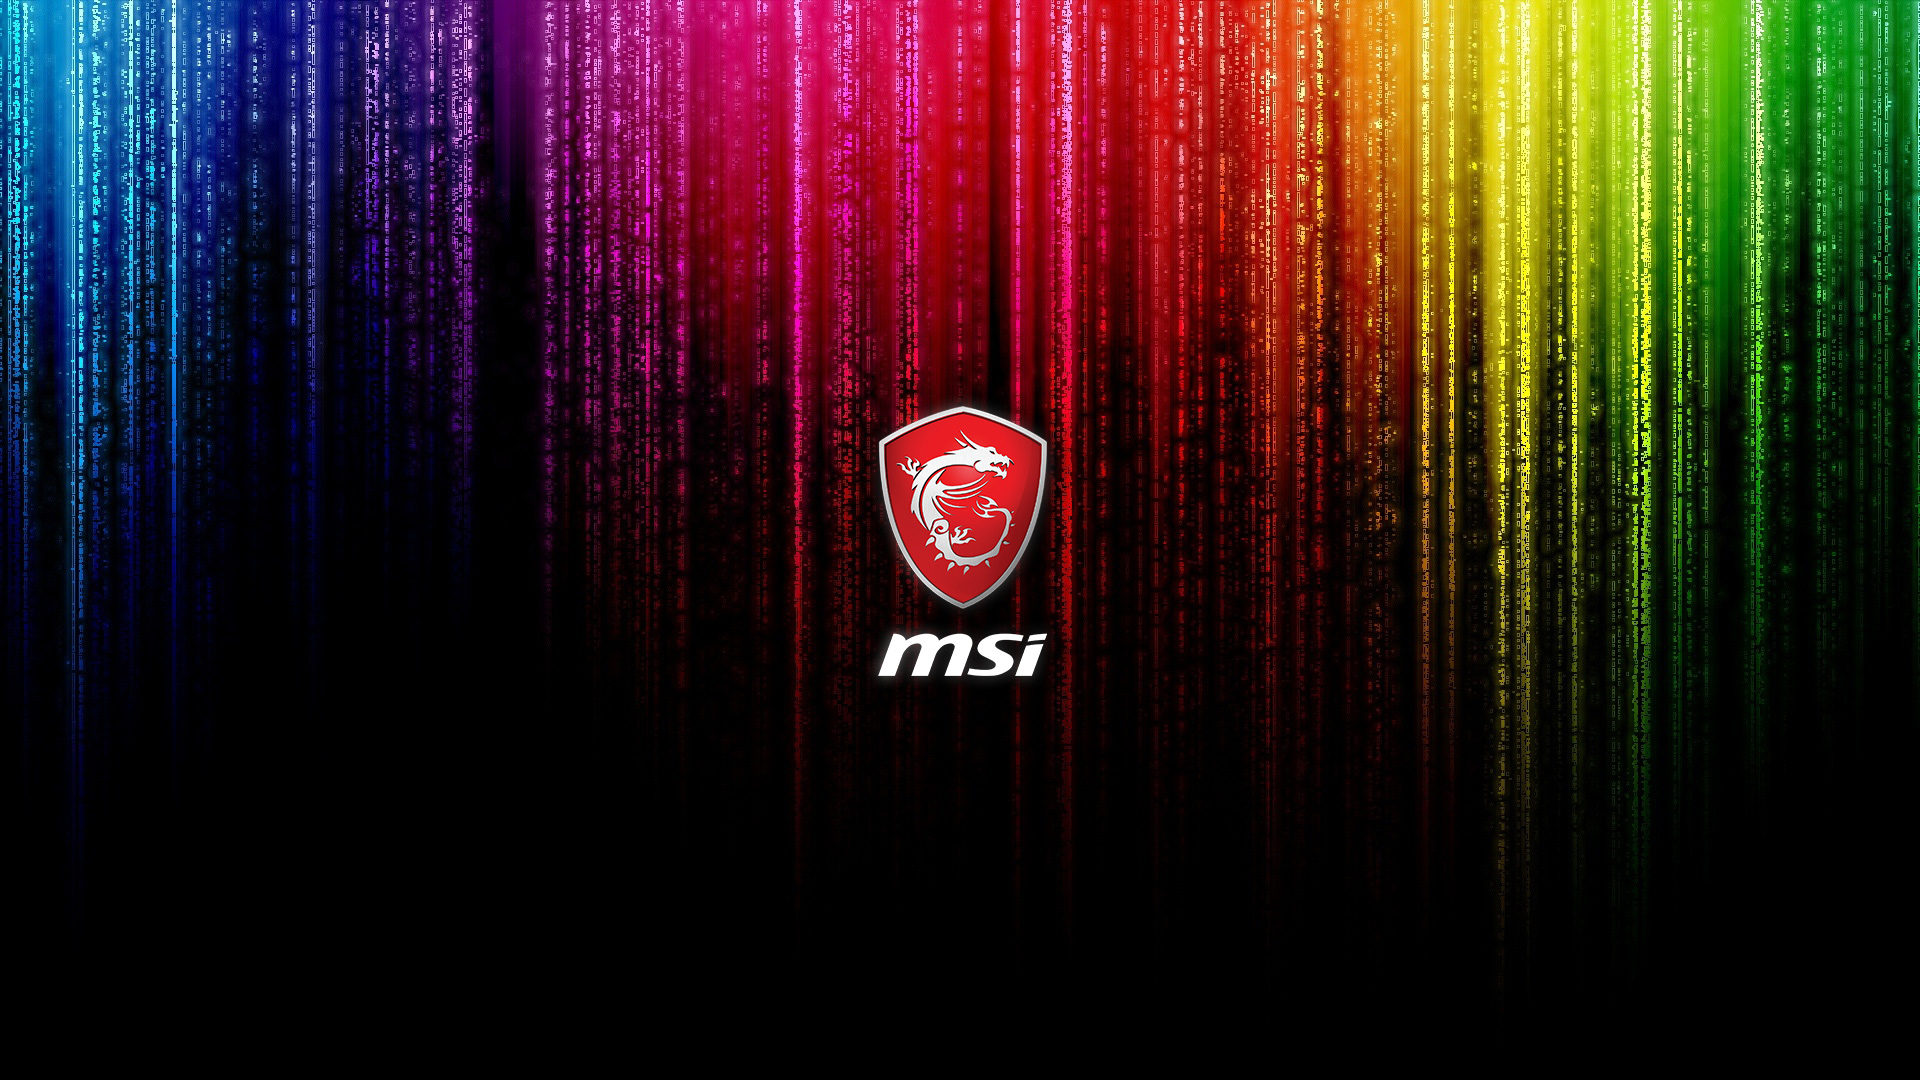 Msi Wallpapers Hd